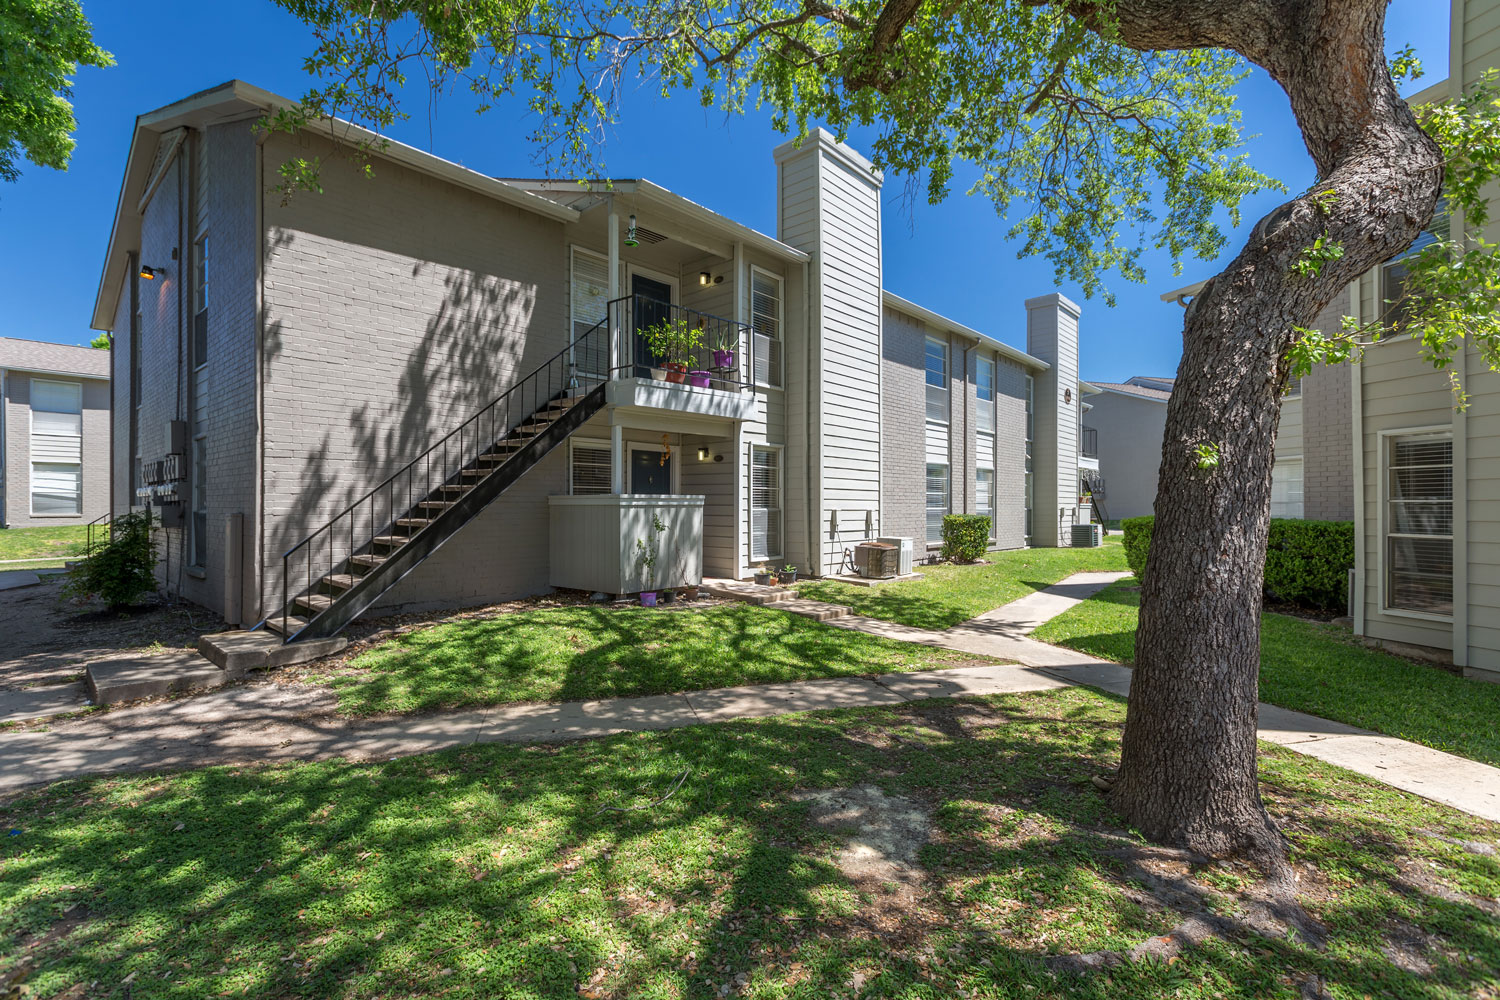 Shaded Green Space at Sapphire Apartments in San Antonio, Texas